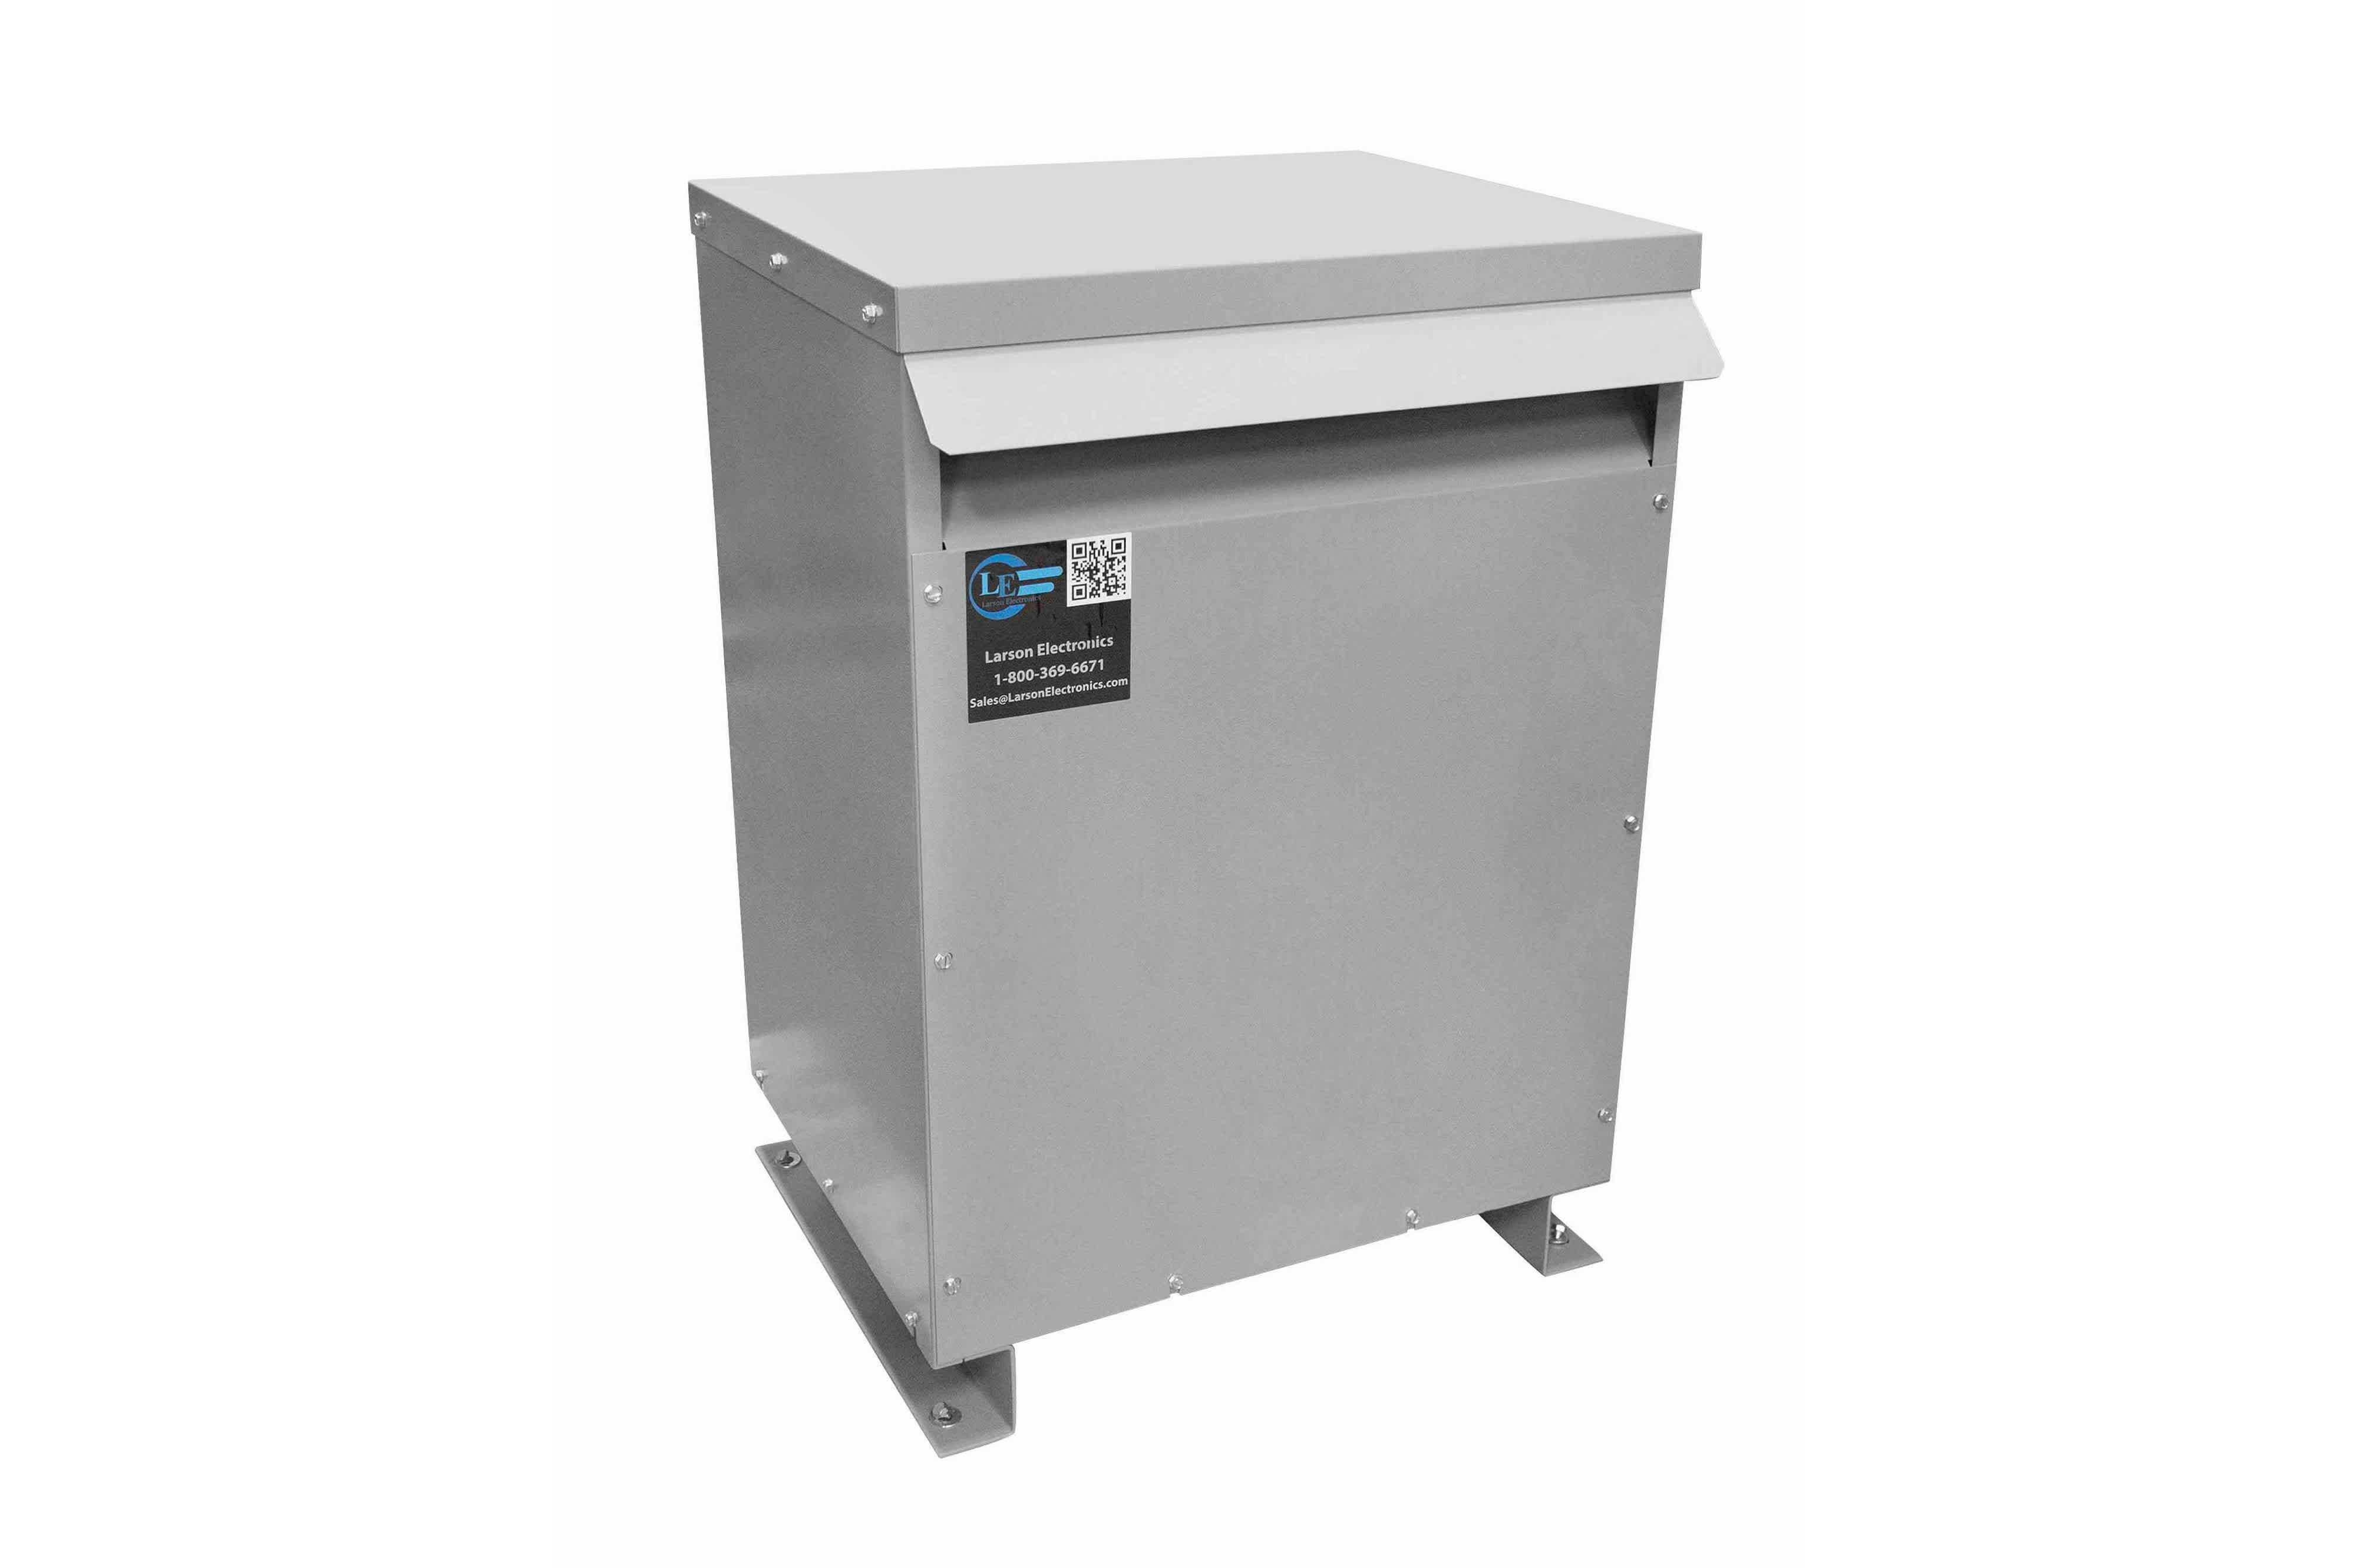 150 kVA 3PH Isolation Transformer, 220V Wye Primary, 480V Delta Secondary, N3R, Ventilated, 60 Hz